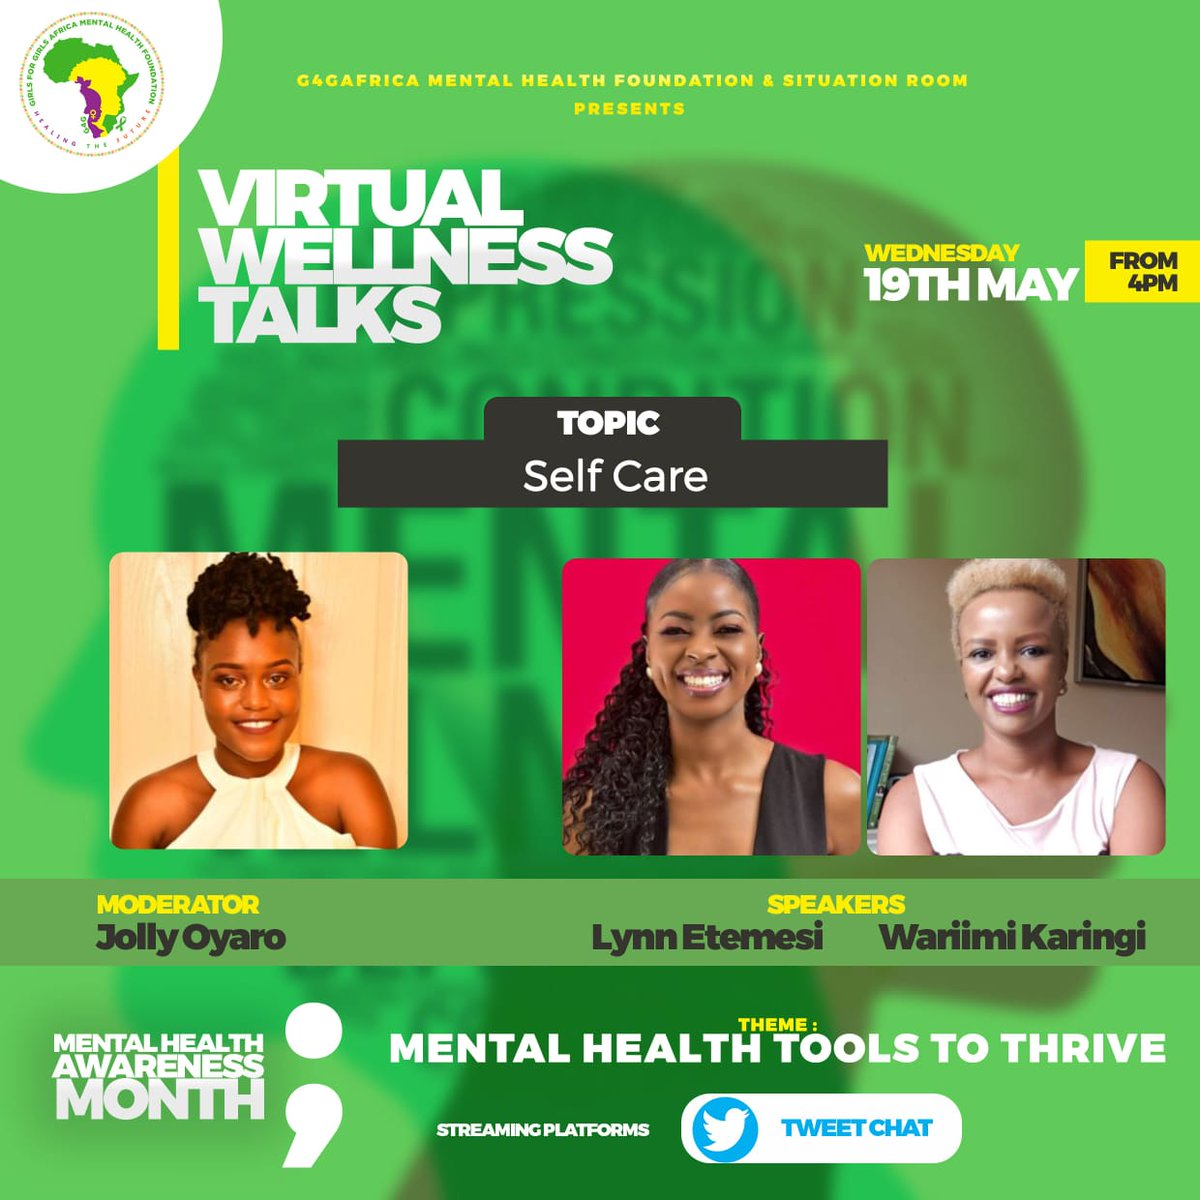 Good evening and welcome to today's virtual wellness talk on Selfcare courtesy of @G4G_Africa and @AuthorQueentah with our speakers @Lynetemesi and @Wairimuwraps  #mentalhealthtoolstothrive https://t.co/vHupp7aS3e